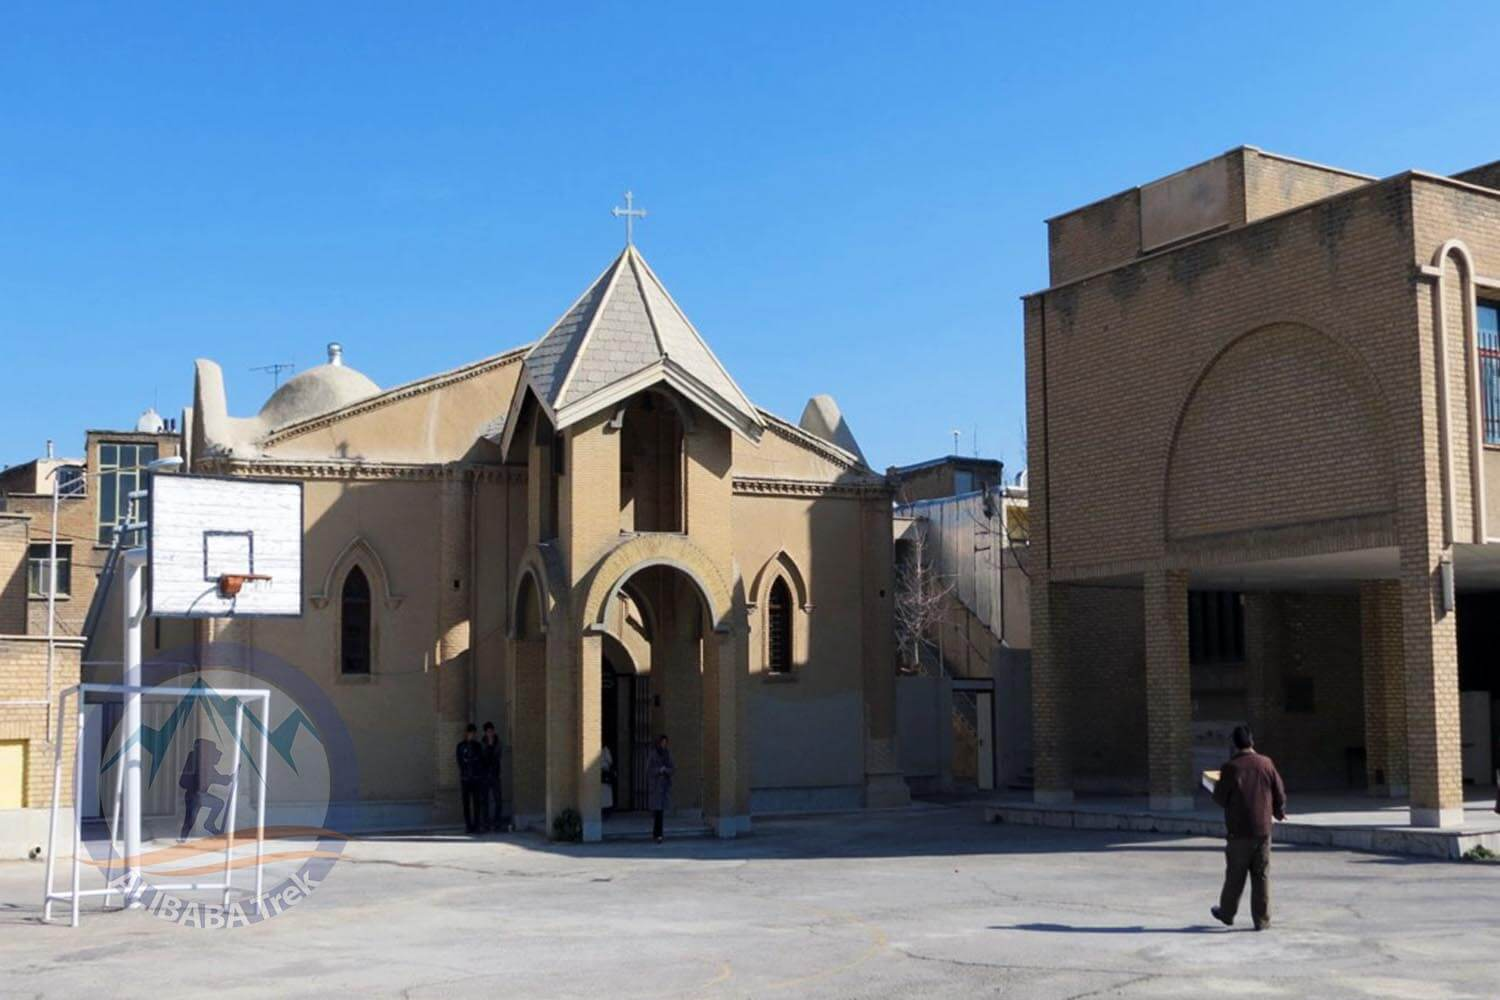 Alibabatrek Iran Travel visit iran tour packages Travel to Arak sightseeing Trip to Arak city tour tourism Arak tourist attraction arak travel arak tour visit arak Mesrop church